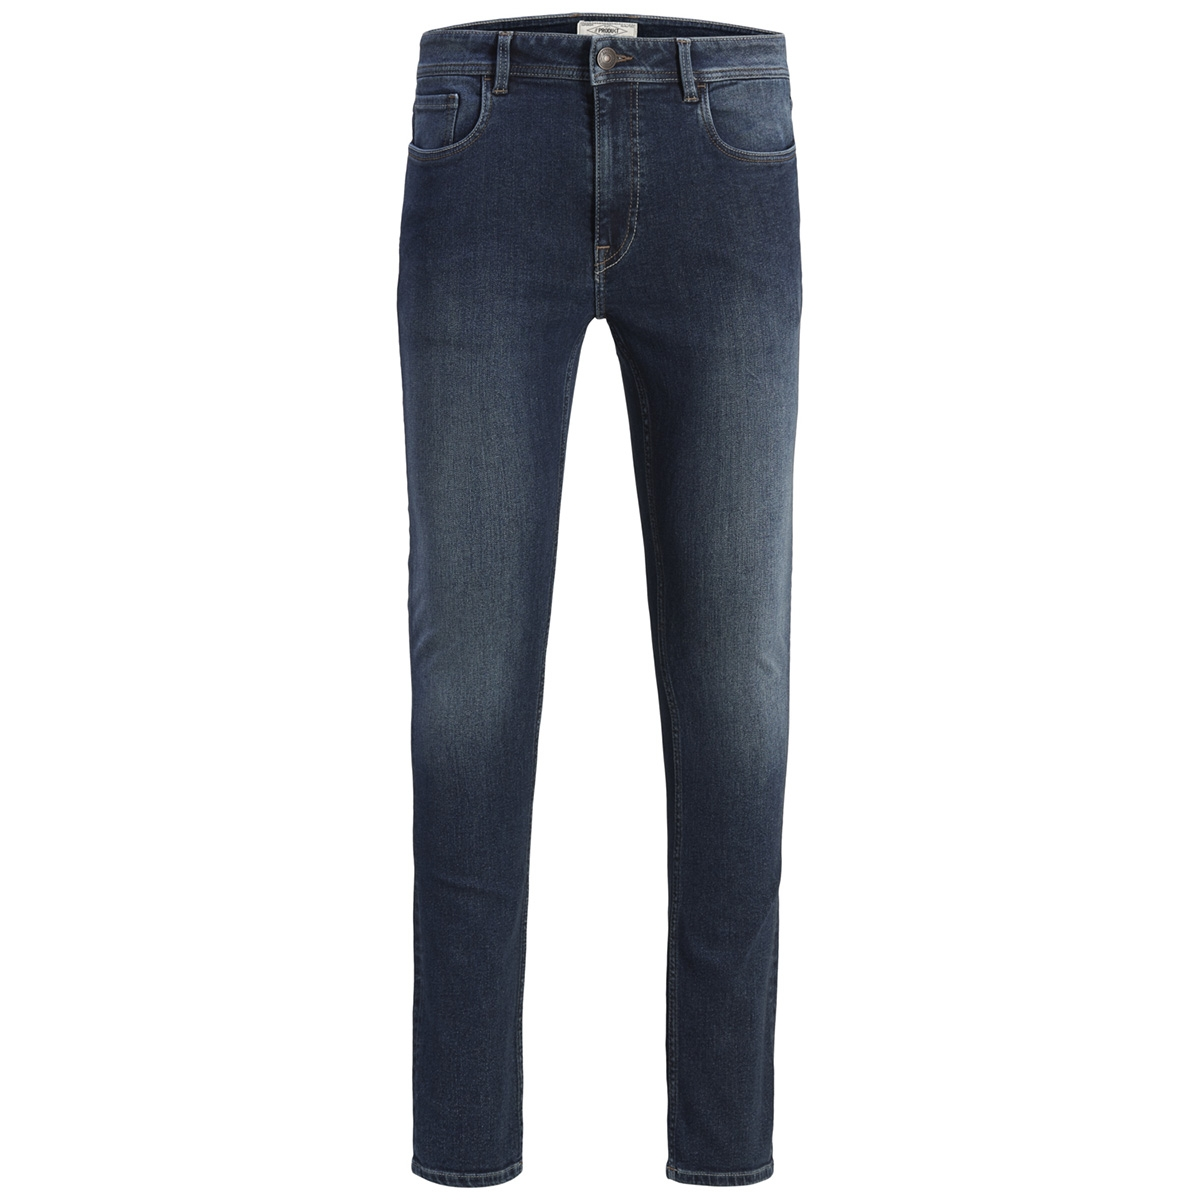 pktakm skinny jeans a-02 12130089 produkt jeans medium blue denim